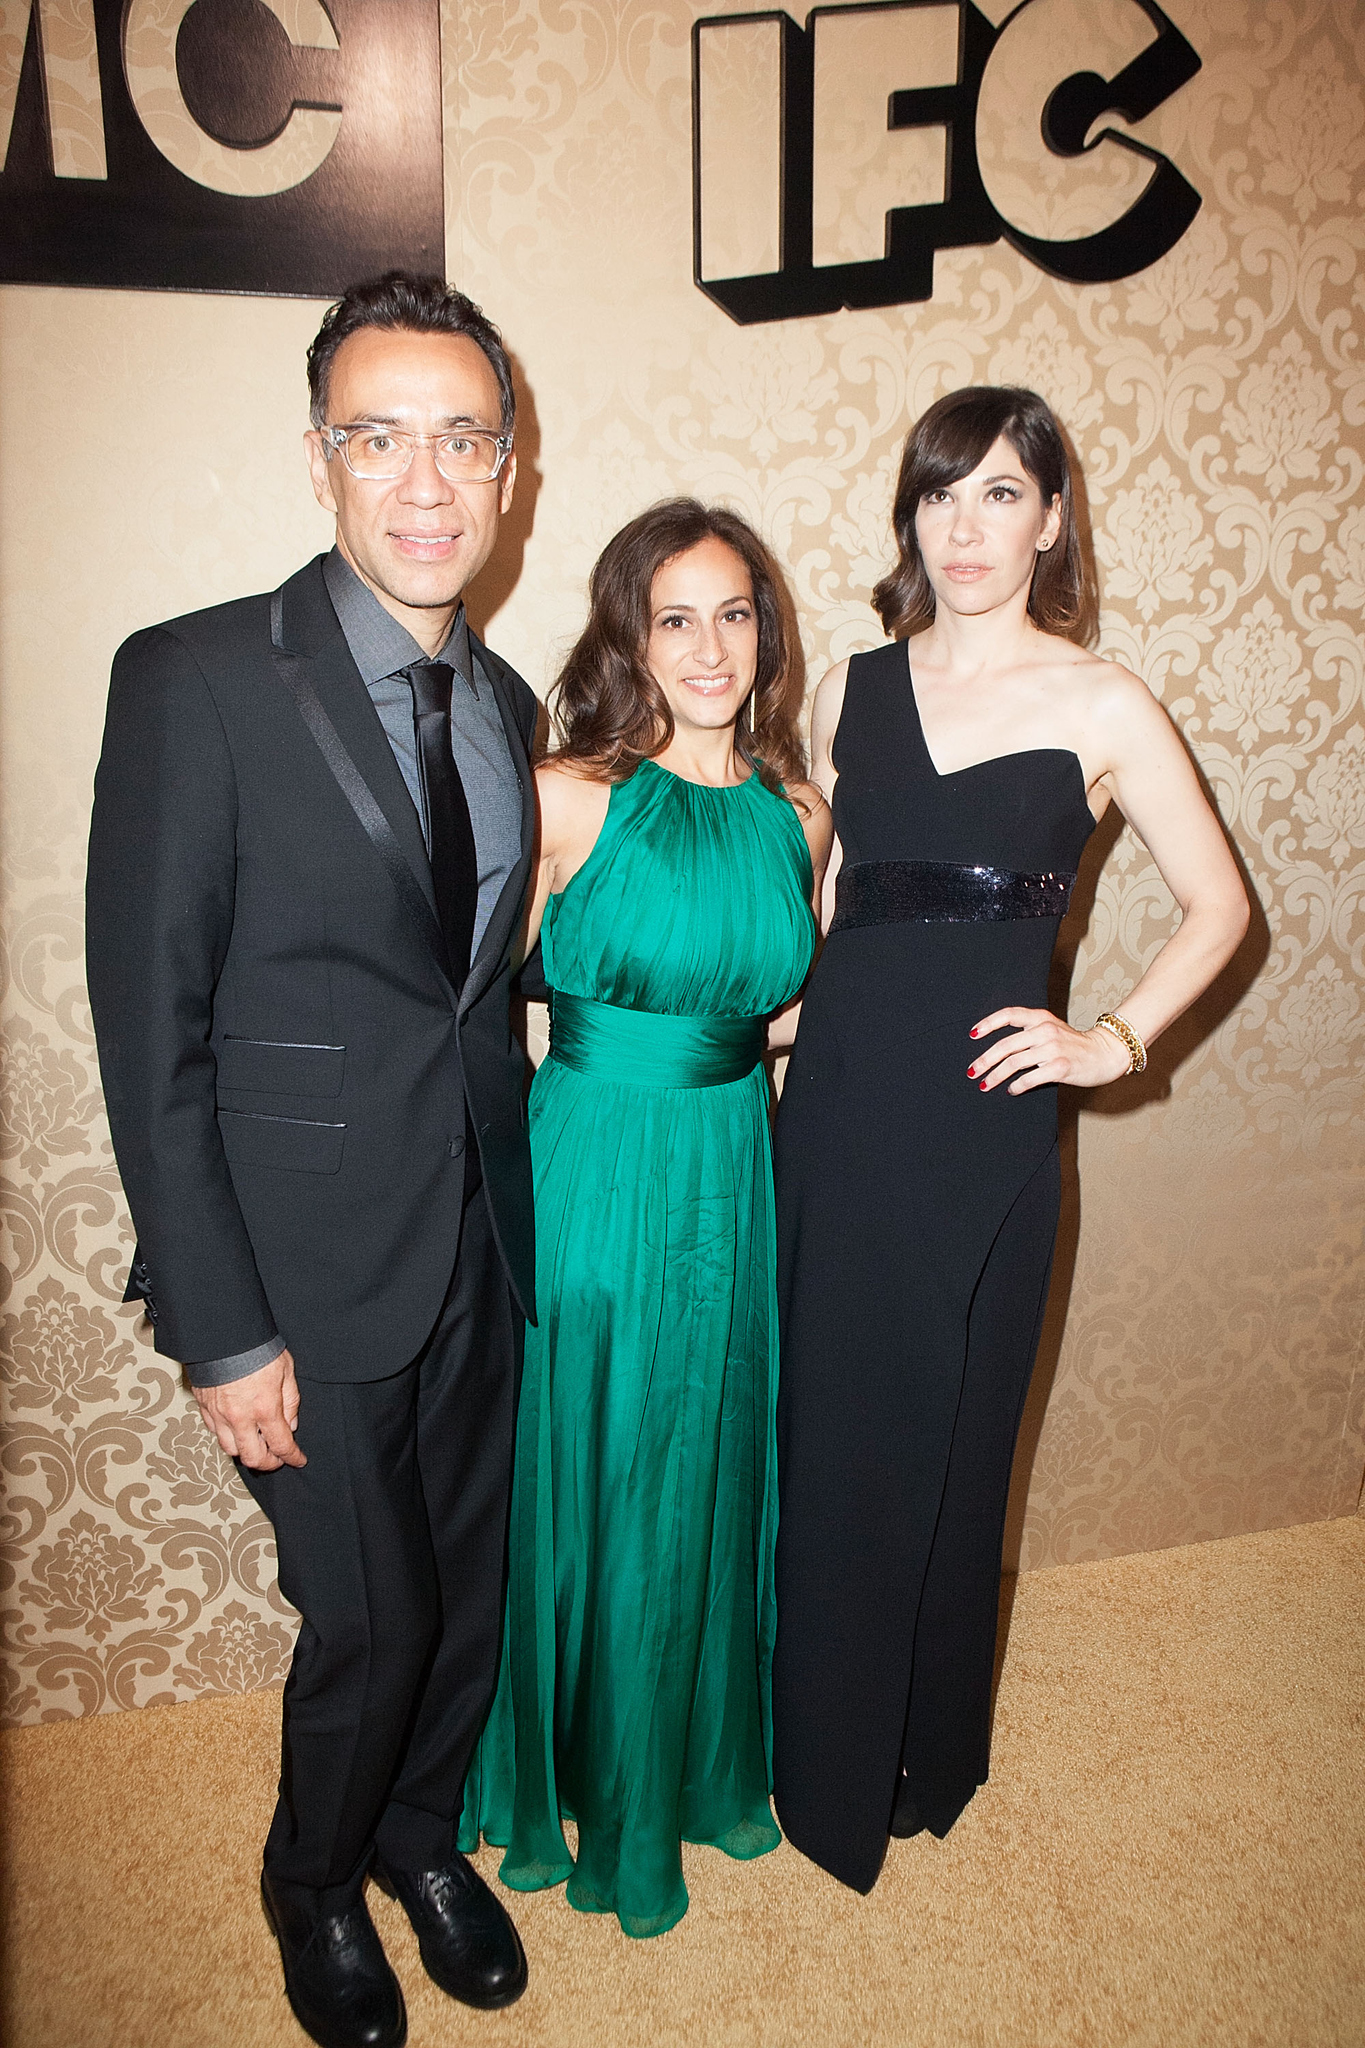 Fred Armisen, Carrie Brownstein, and Jennifer Caserta at an event for The 66th Primetime Emmy Awards (2014)